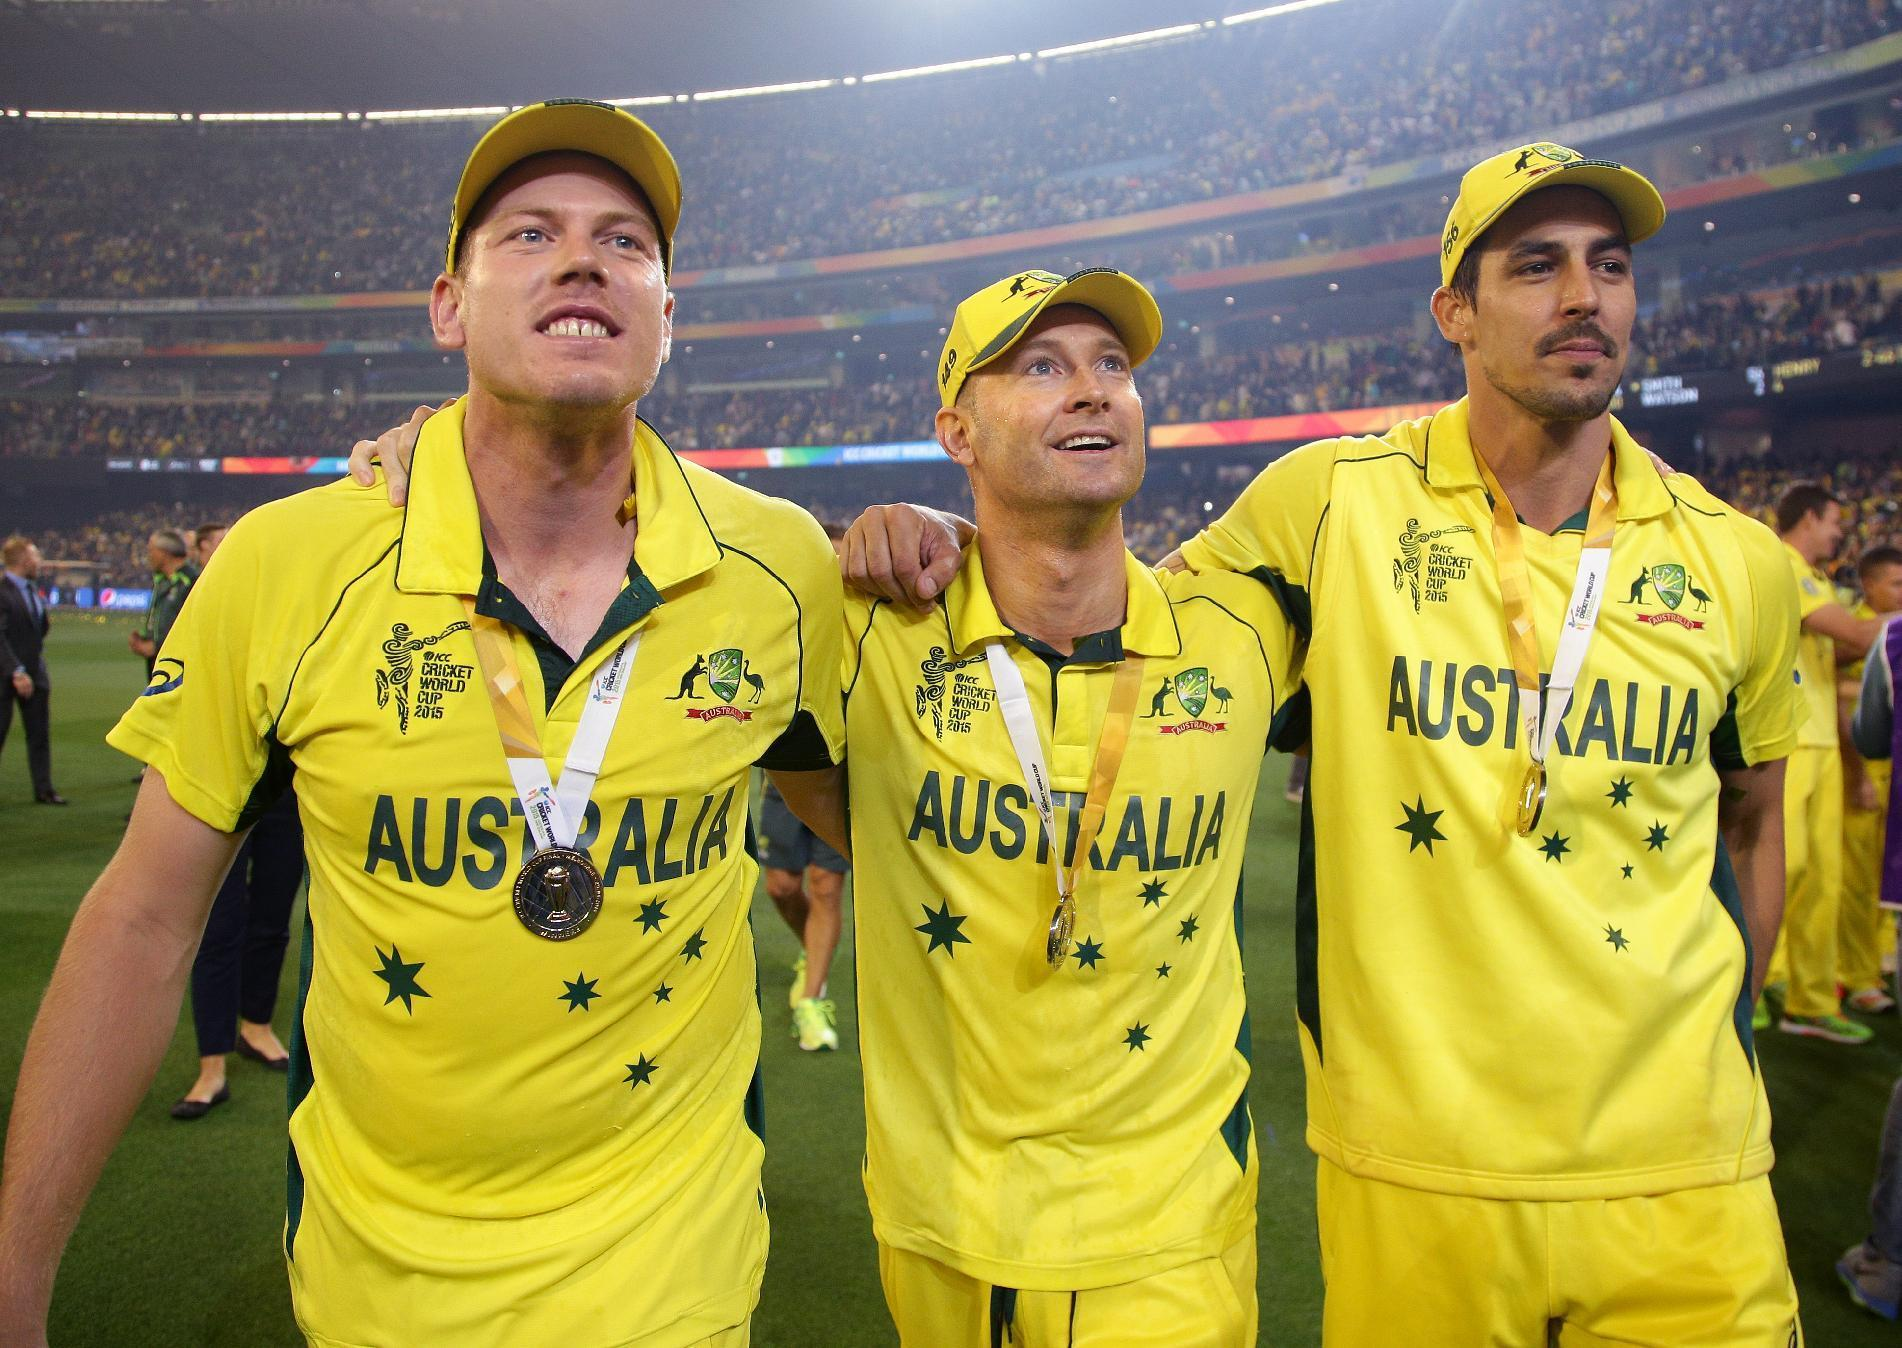 Clarke, Lehmann help Australia to 5th World Cup title